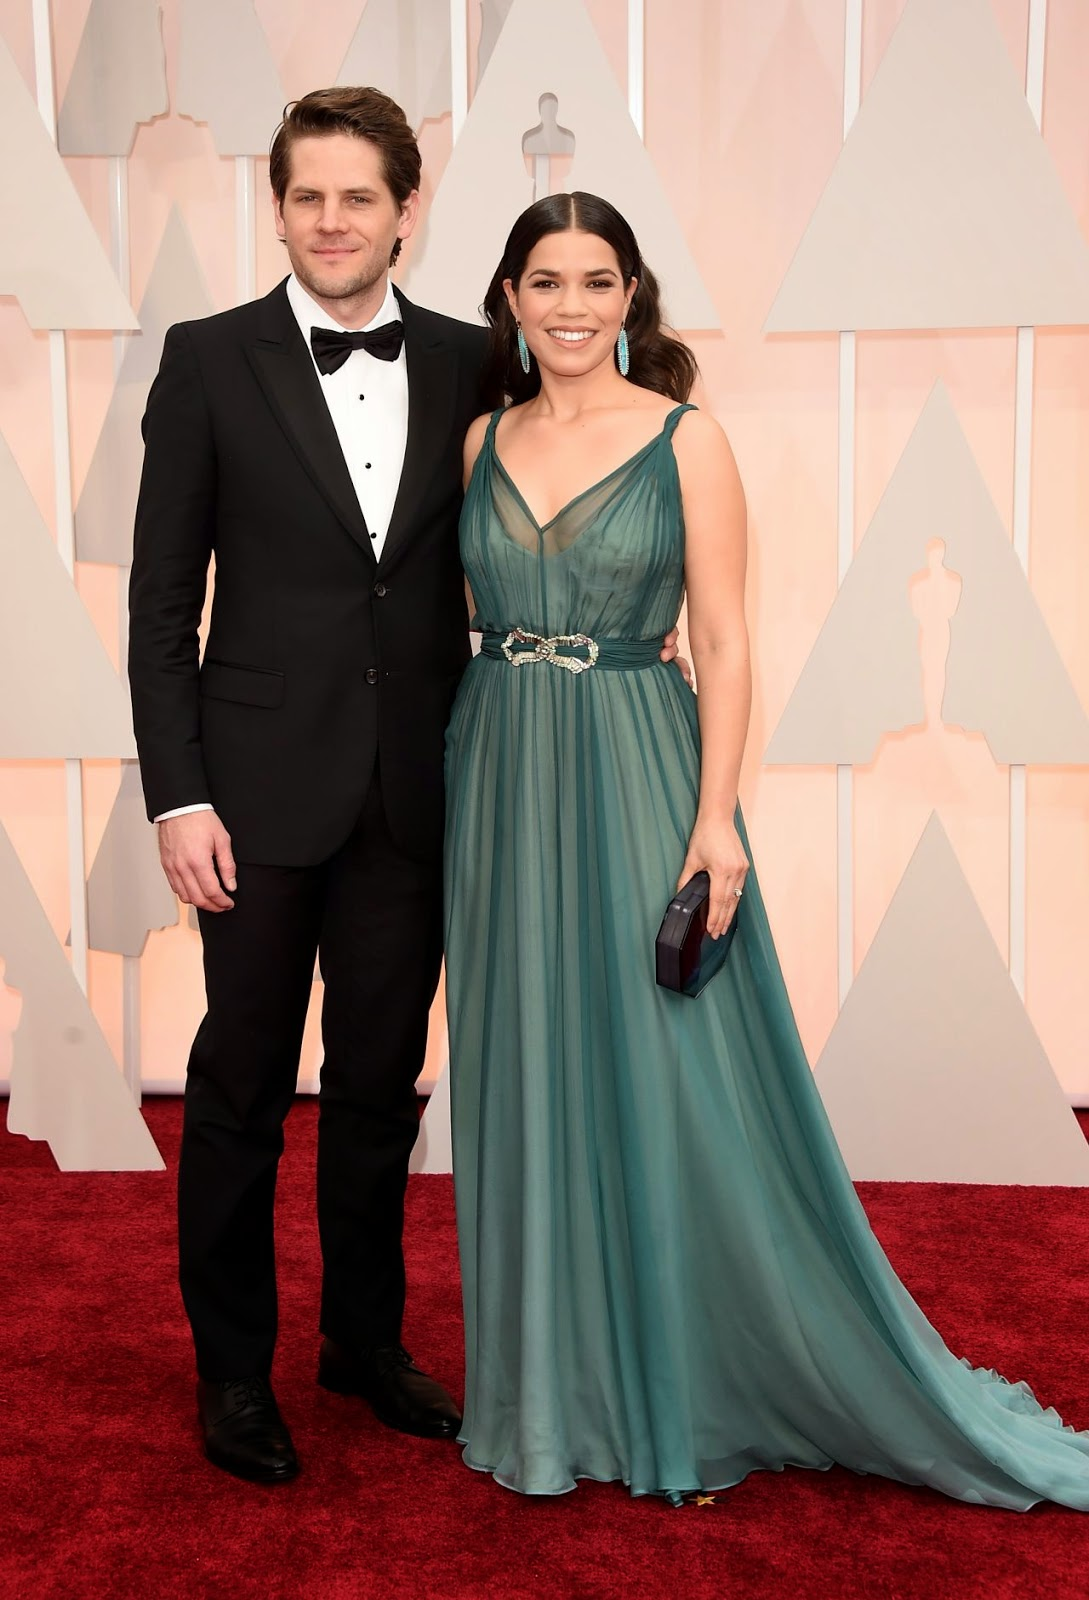 America Ferrera in a gorgeous chiffon dress at the 2015 Oscars in Hollywood